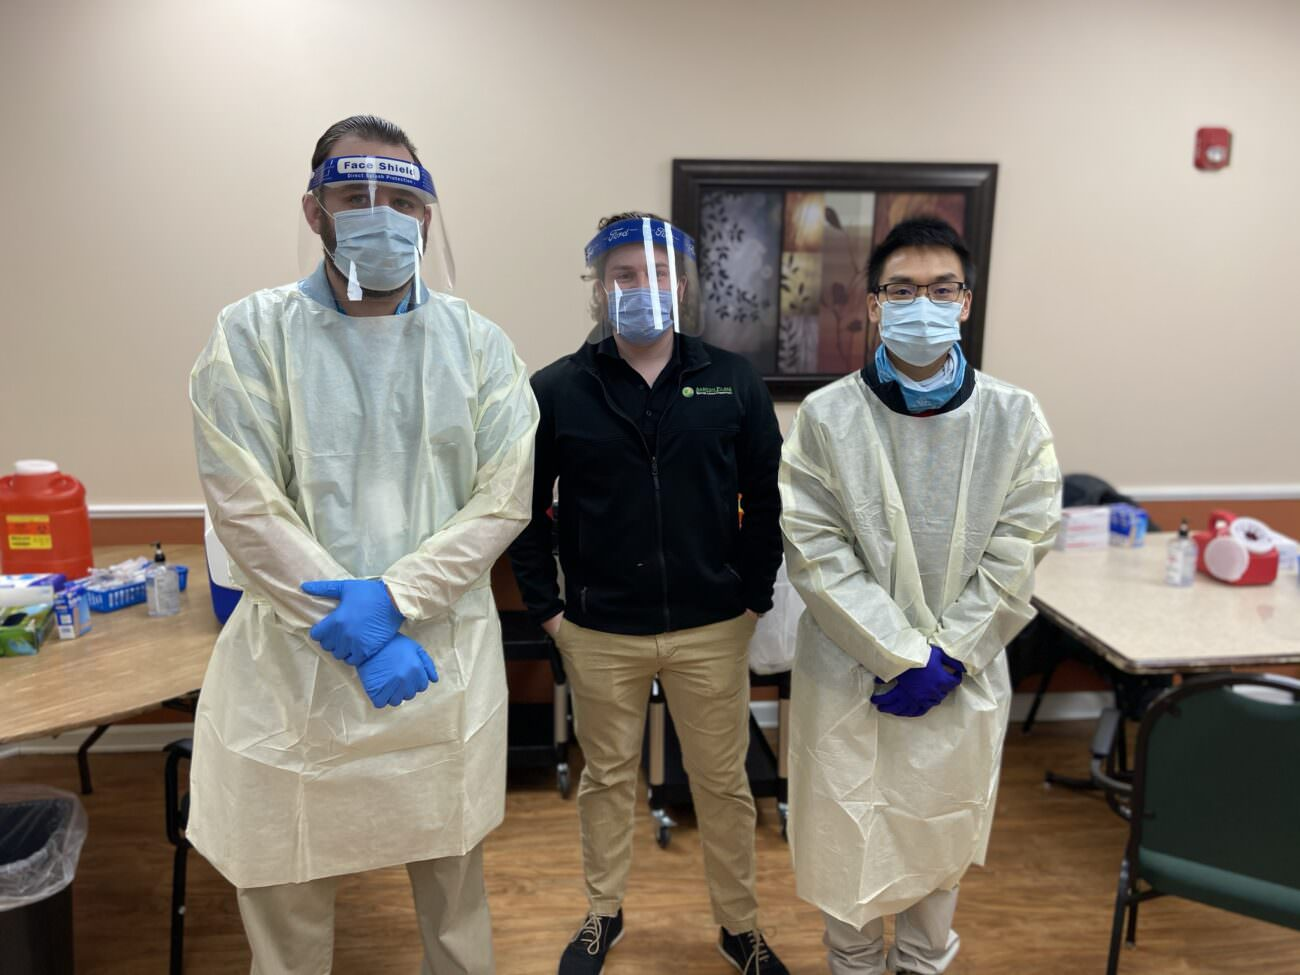 Kevin Christiano, Ashton Place Administrator, stands with two medical workers who administered the Pfizer BioNTech COVID-19 vaccine on Monday, January 11th, 2021